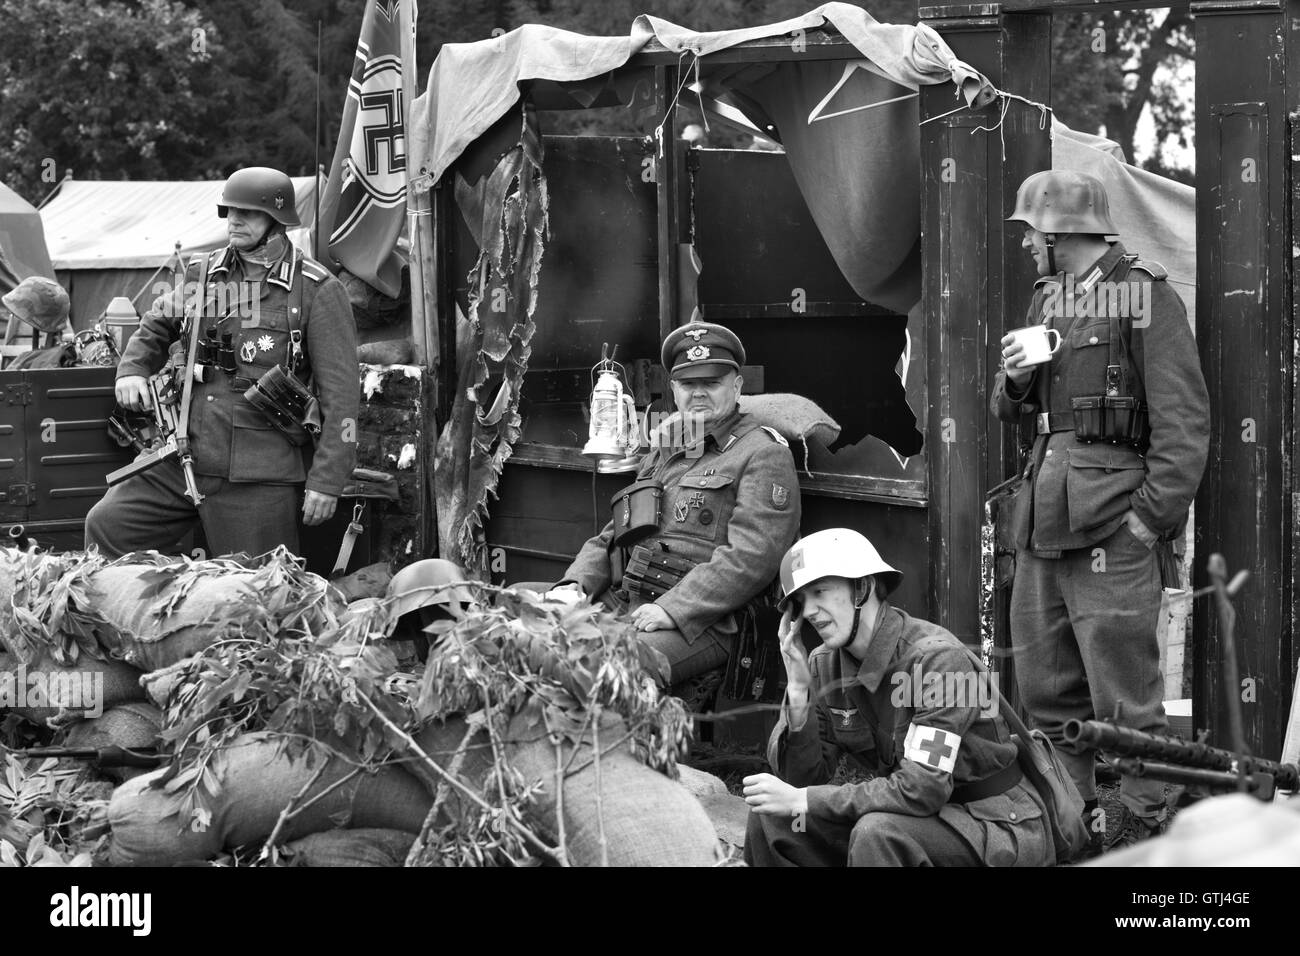 German Army in a bombed café during the war in France - Stock Image